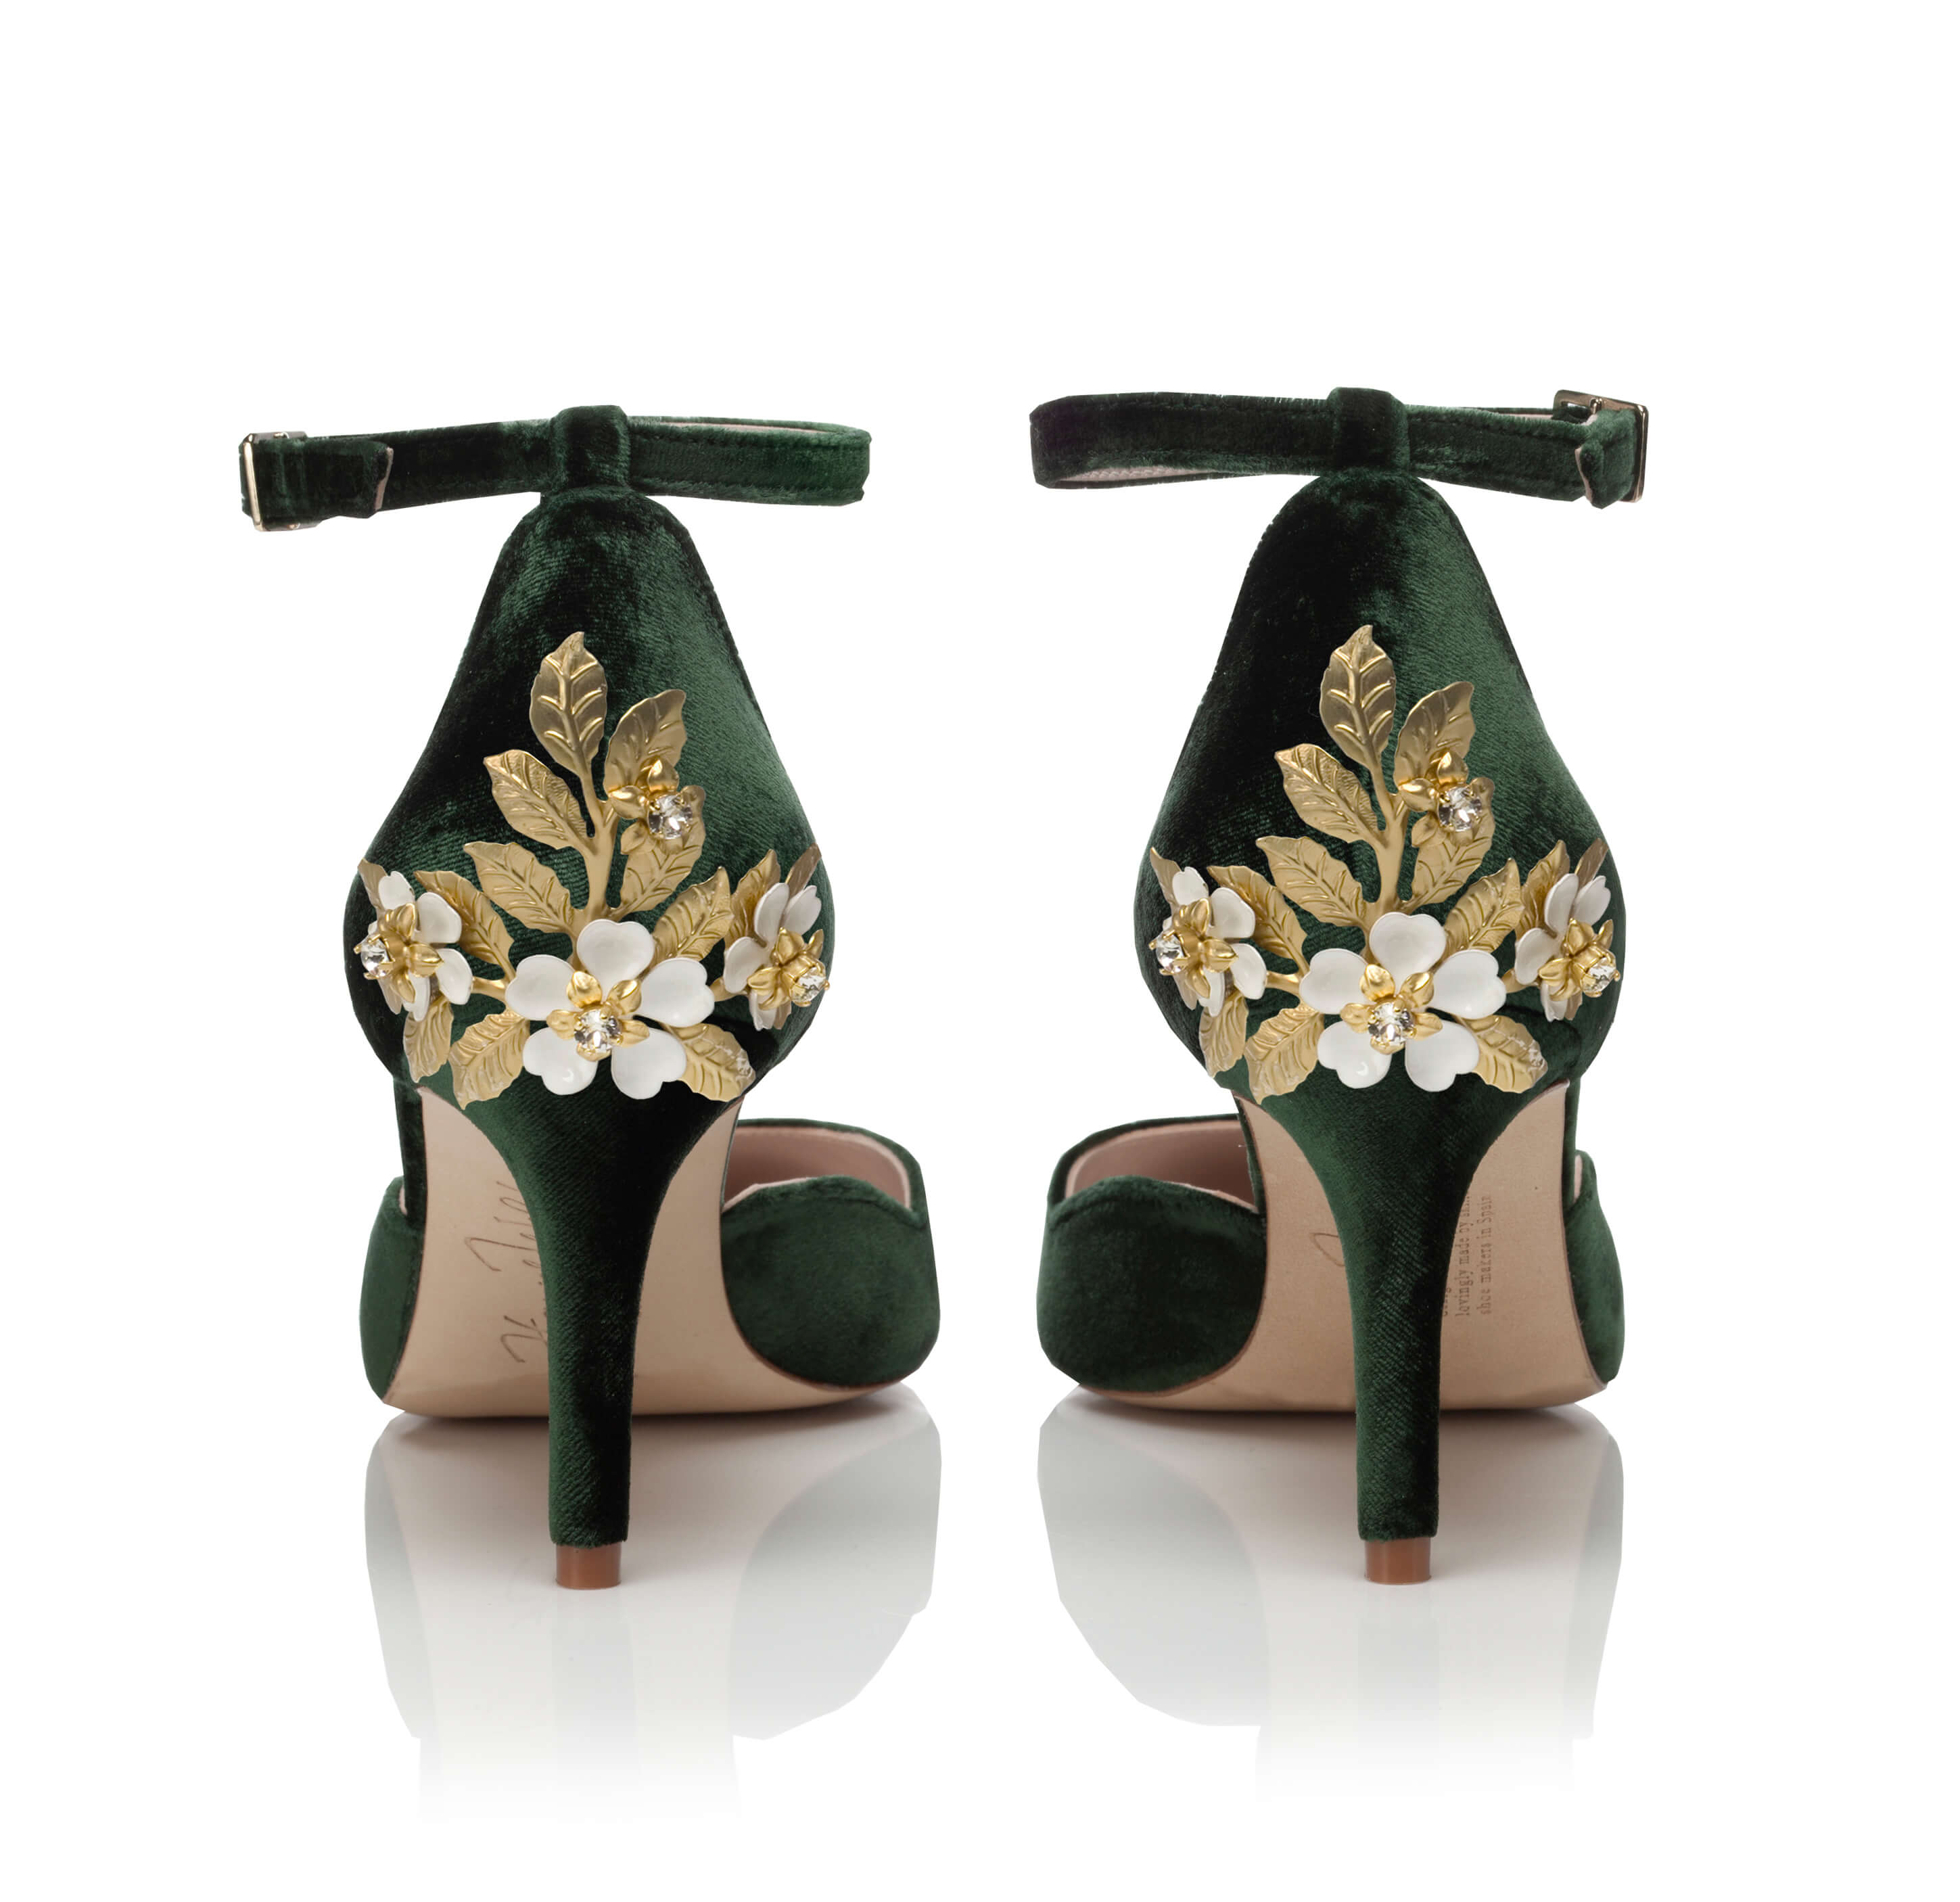 Sahara Mid Forest Green -  Sahara Mid Forest Green Blossom Small Gold